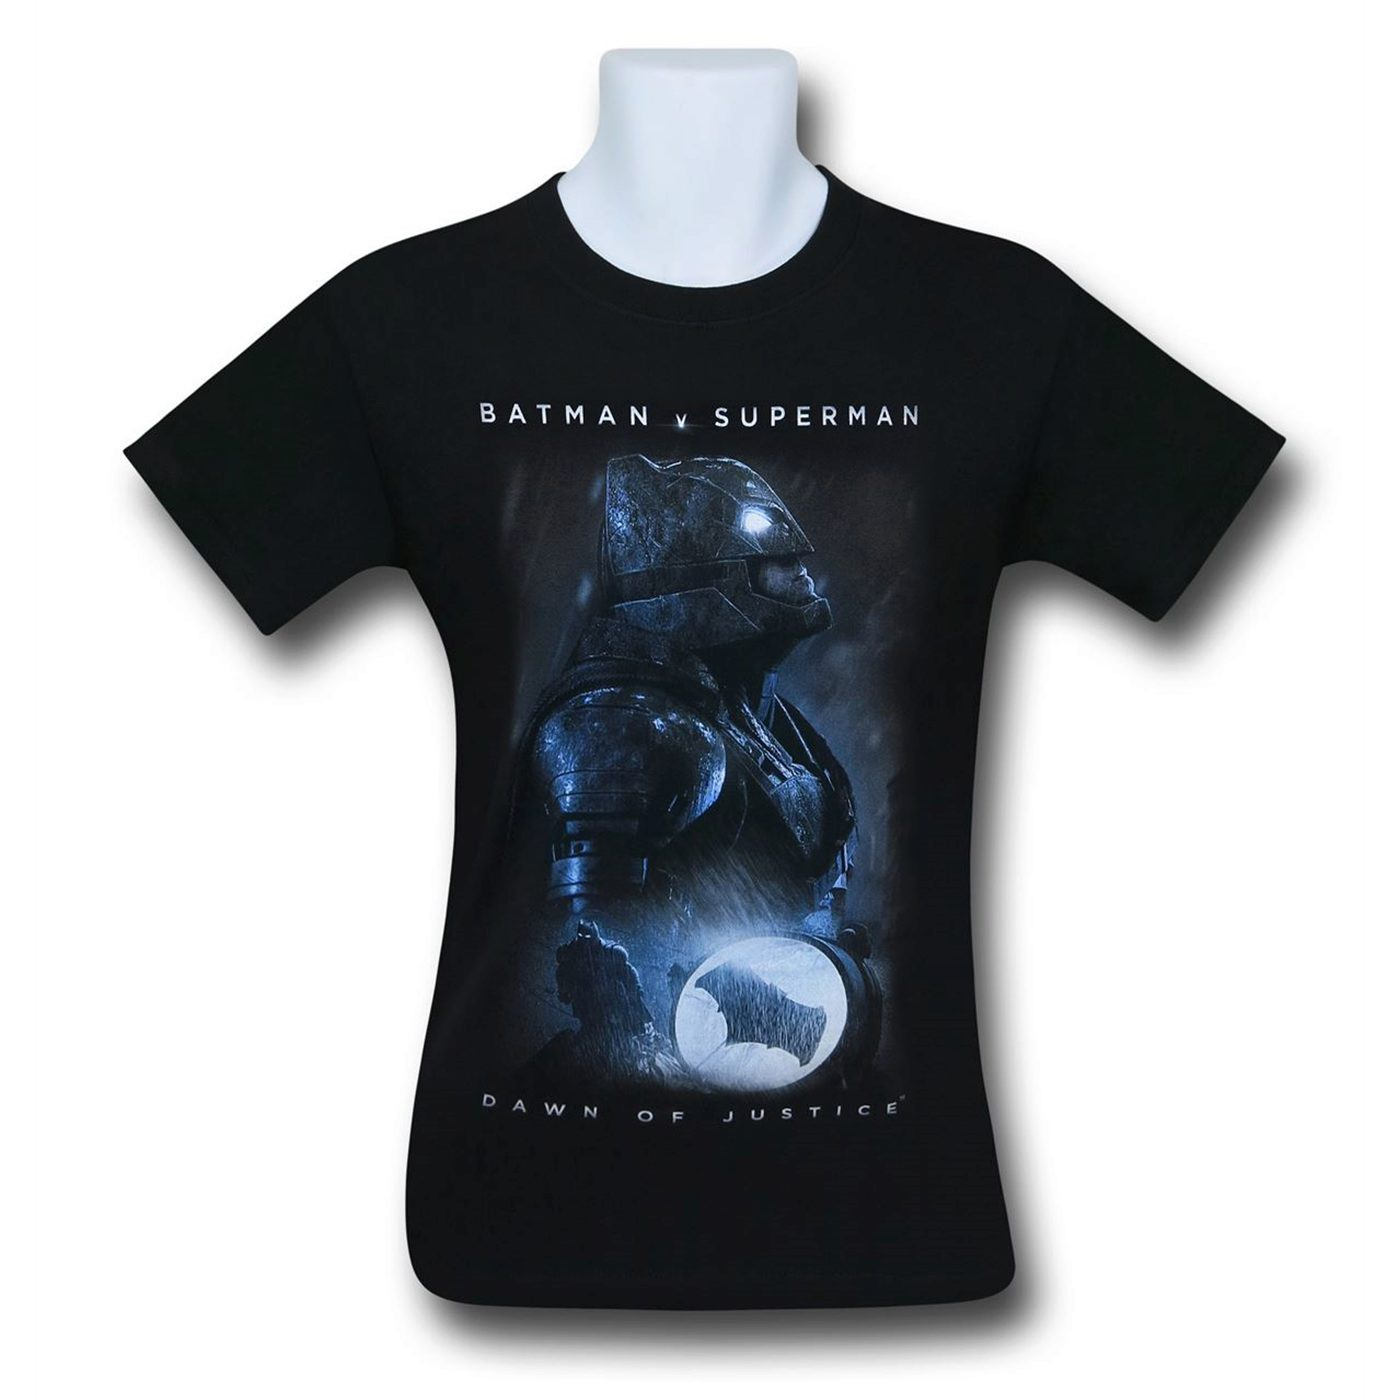 Batman Vs Superman Batsignal T-Shirt